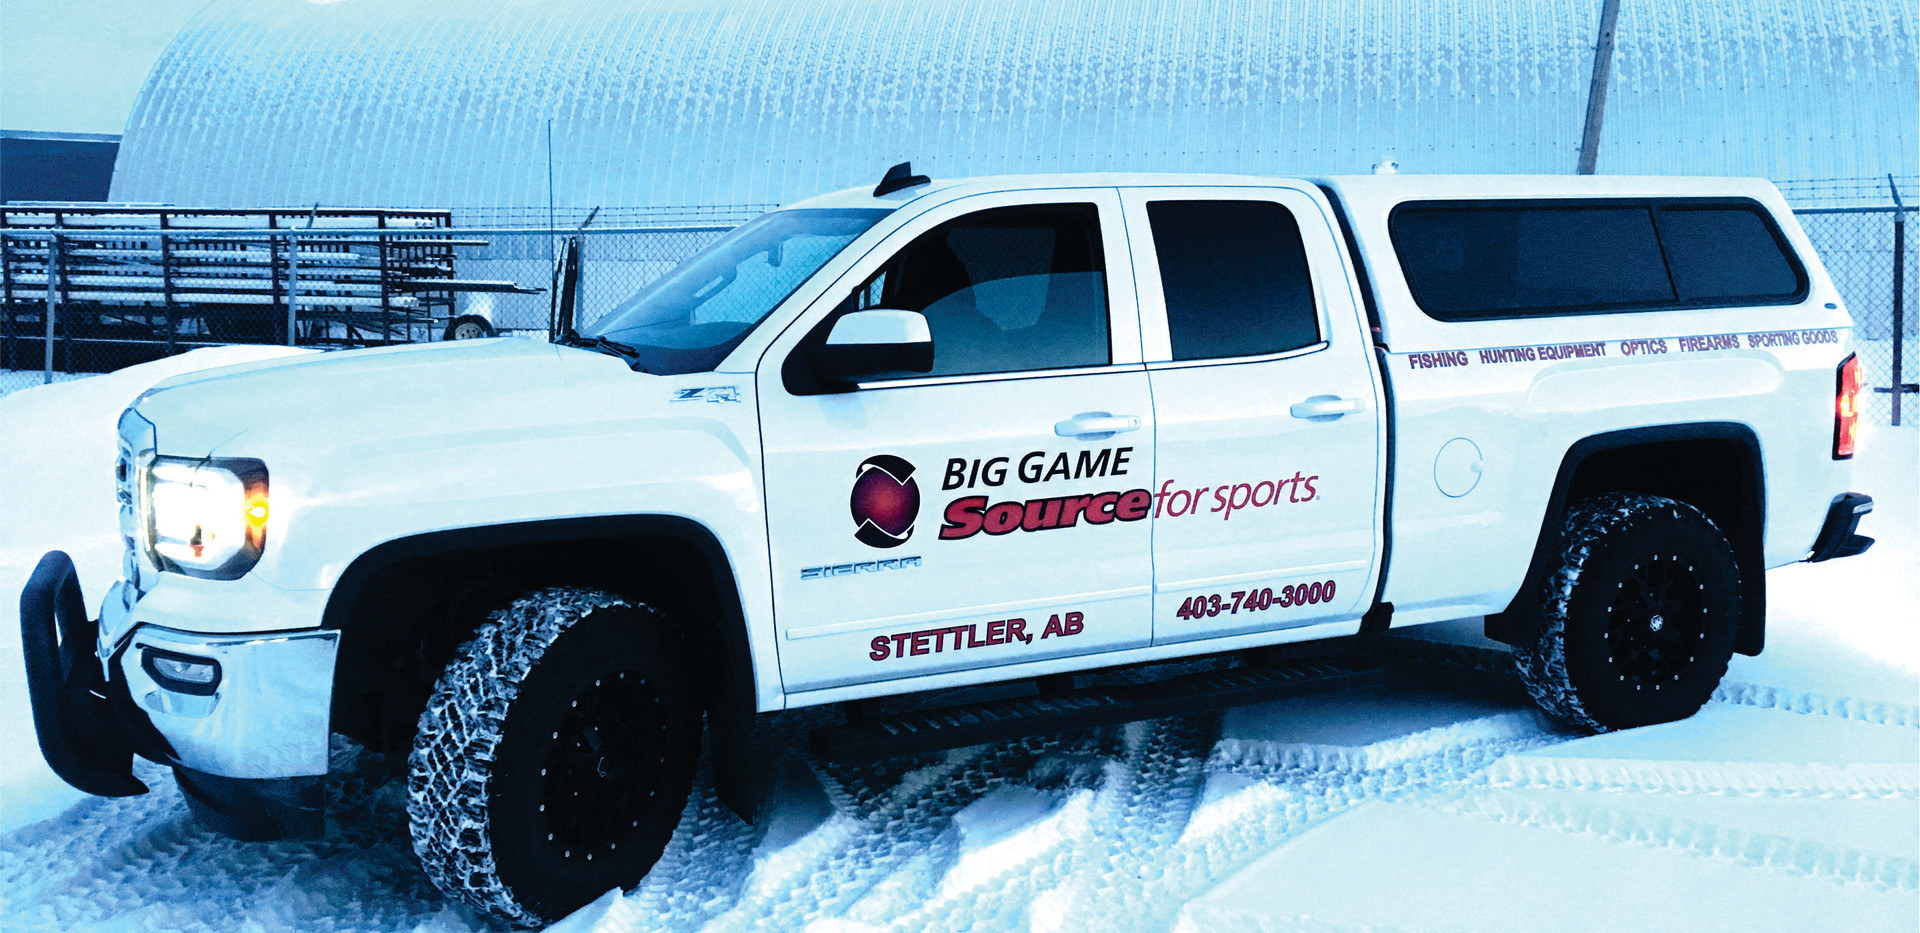 Big Game Source for Sports Truck 2.jpg